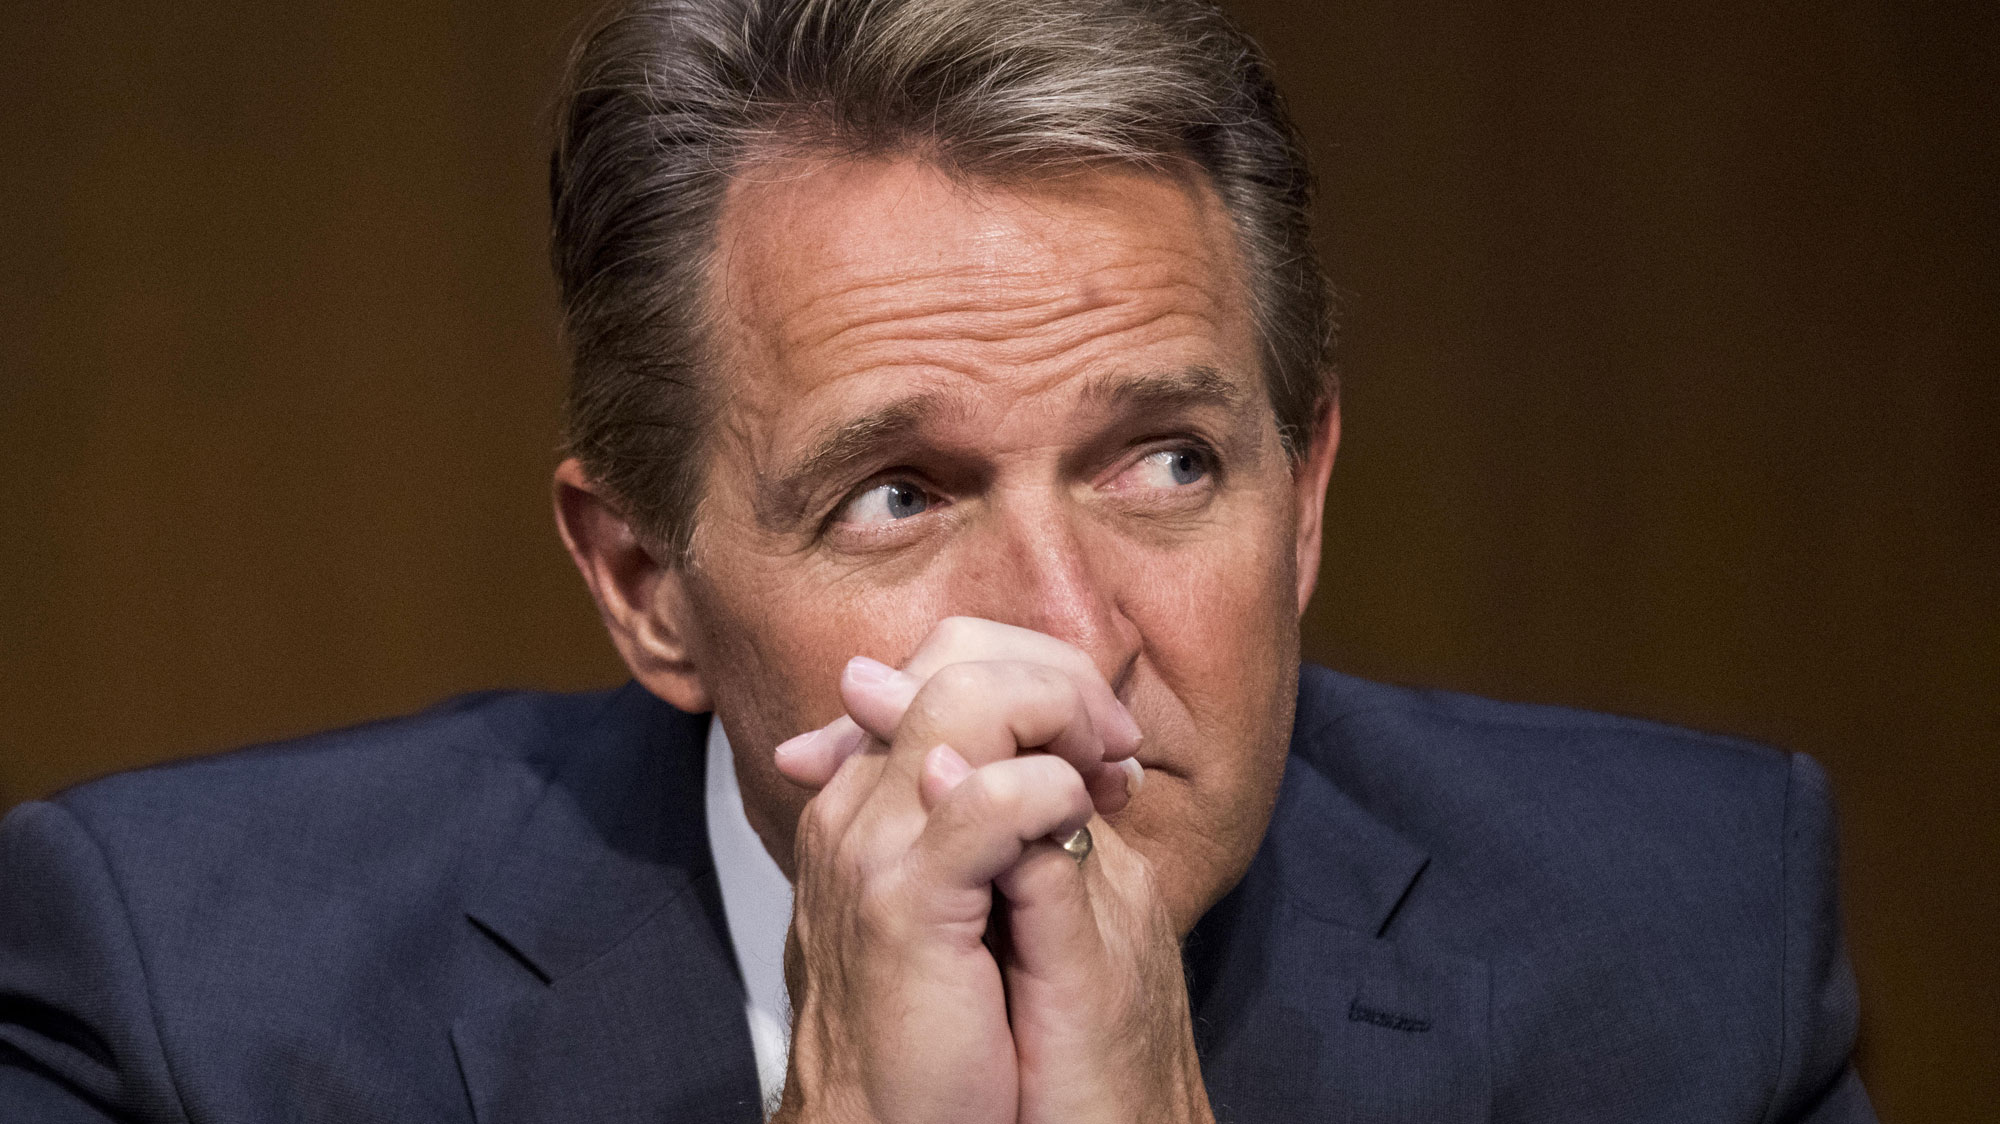 Flake Will Not Seek Re-election in 2018